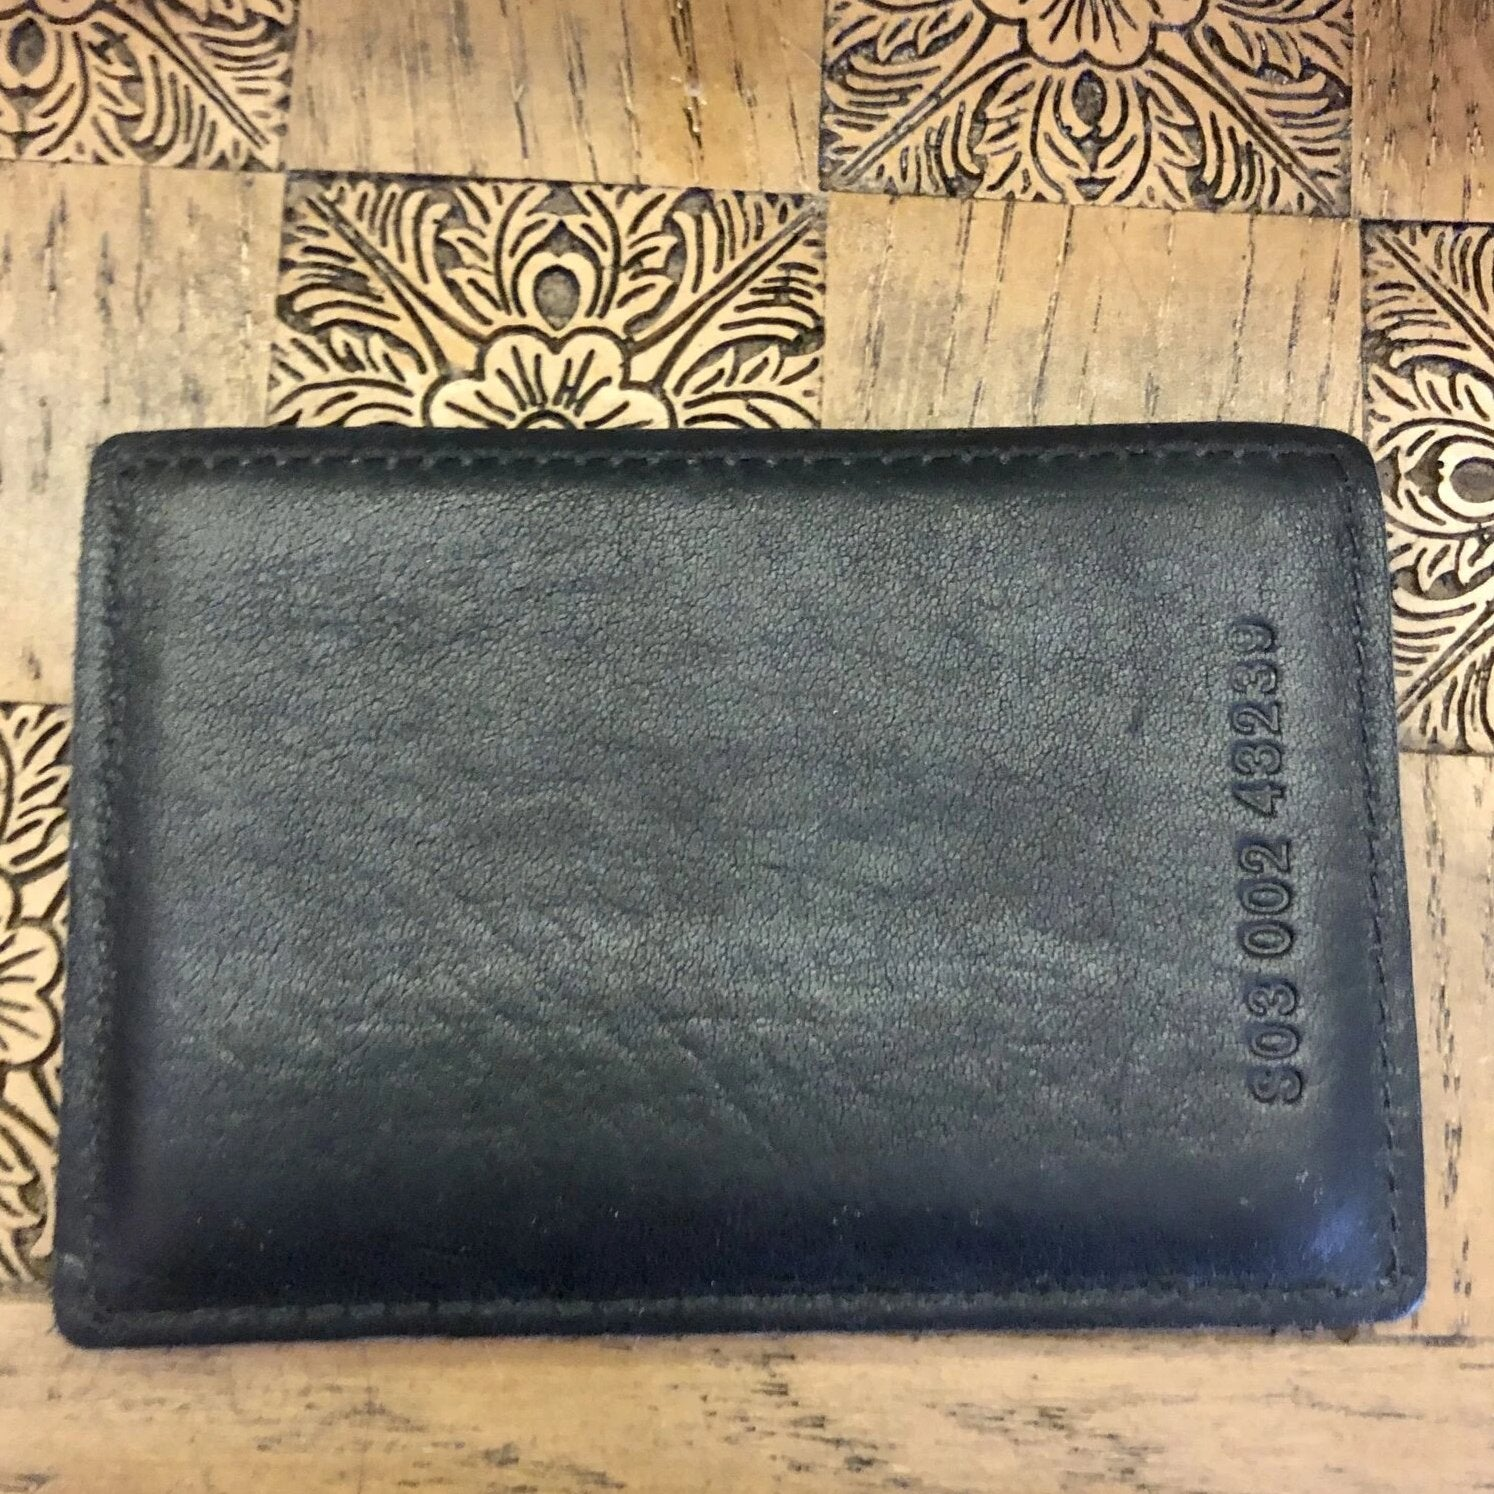 Shinola Black Leather Card Case